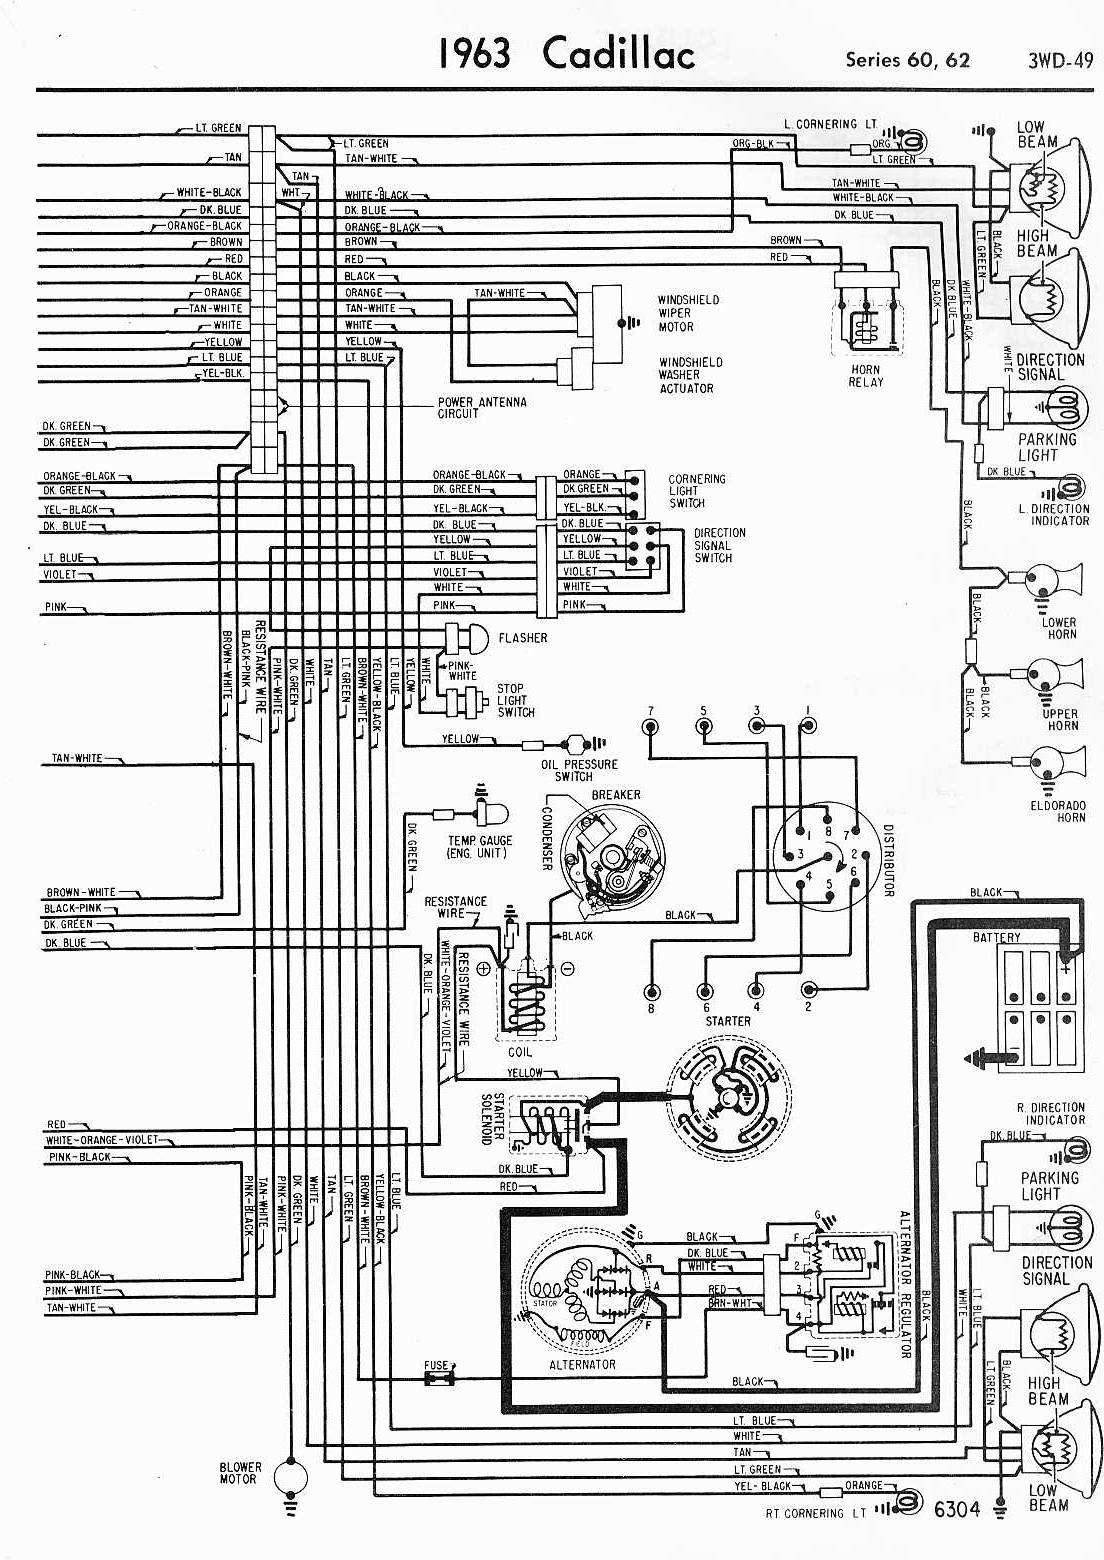 Diagram 64 Cadillac Wiring Diagram Full Version Hd Quality Wiring Diagram Diagramstana Dolcialchimie It